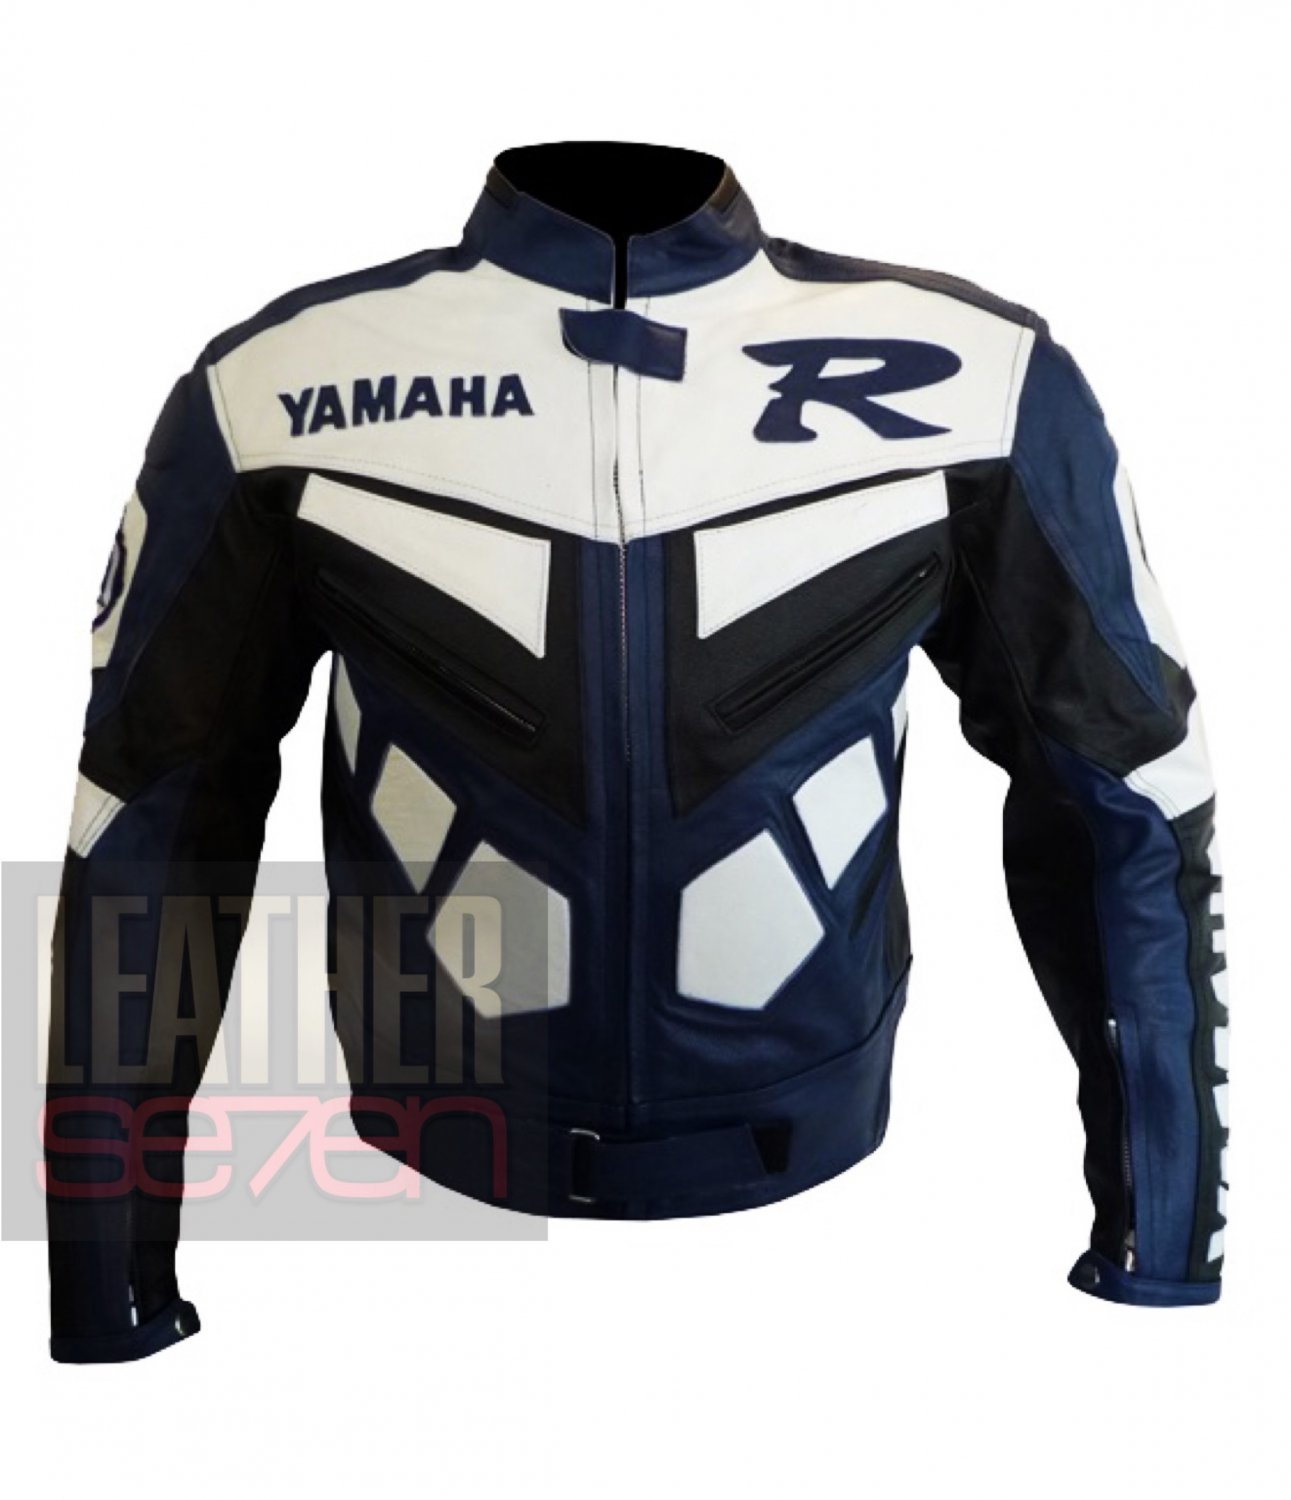 Yamaha R Blue 2 Pure Cowhide Leather Racing Jackets For Bikers by Buttco Group